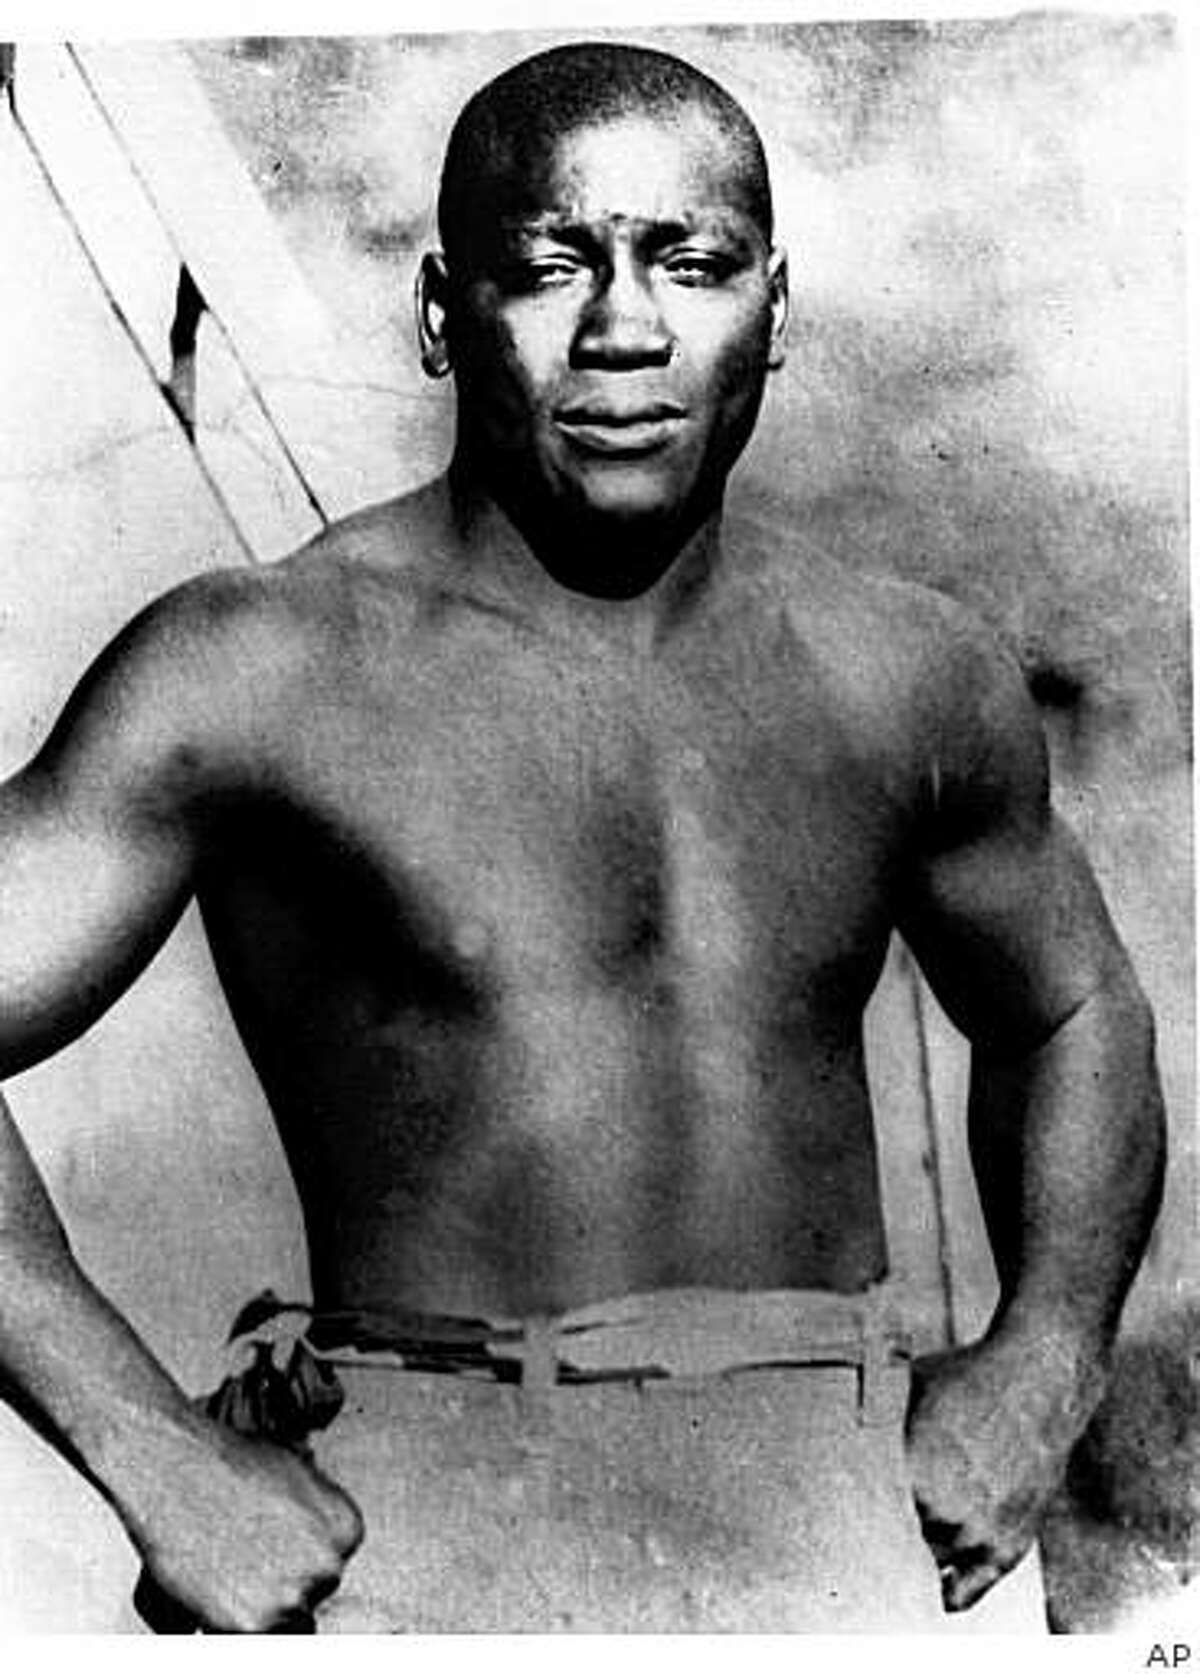 ** FILE ** An undated photo of Jack Johnson, born in Galveston, Texas, who became the first black to win the heavyweight boxing title. He had approximately 113 bouts, losing only six. Johnson was inducted into the Boxing Hall of Fame in 1954. Johnson is the subject of a new documentary by film maker Ken Burns. (AP Photo) timeline_144